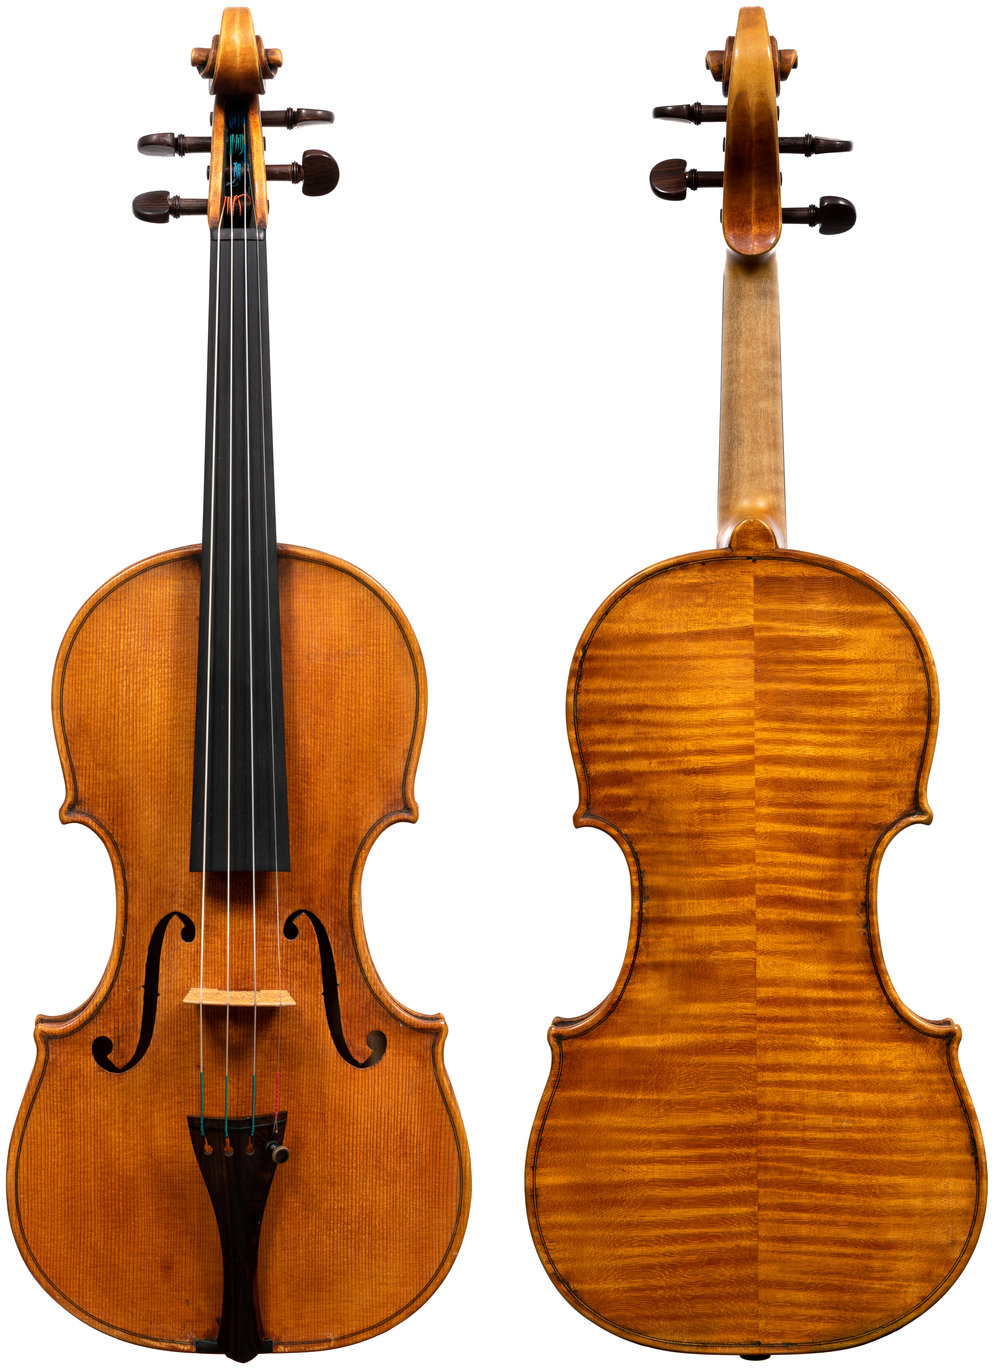 Copy of Copy of Nathaniel Rowan Violin